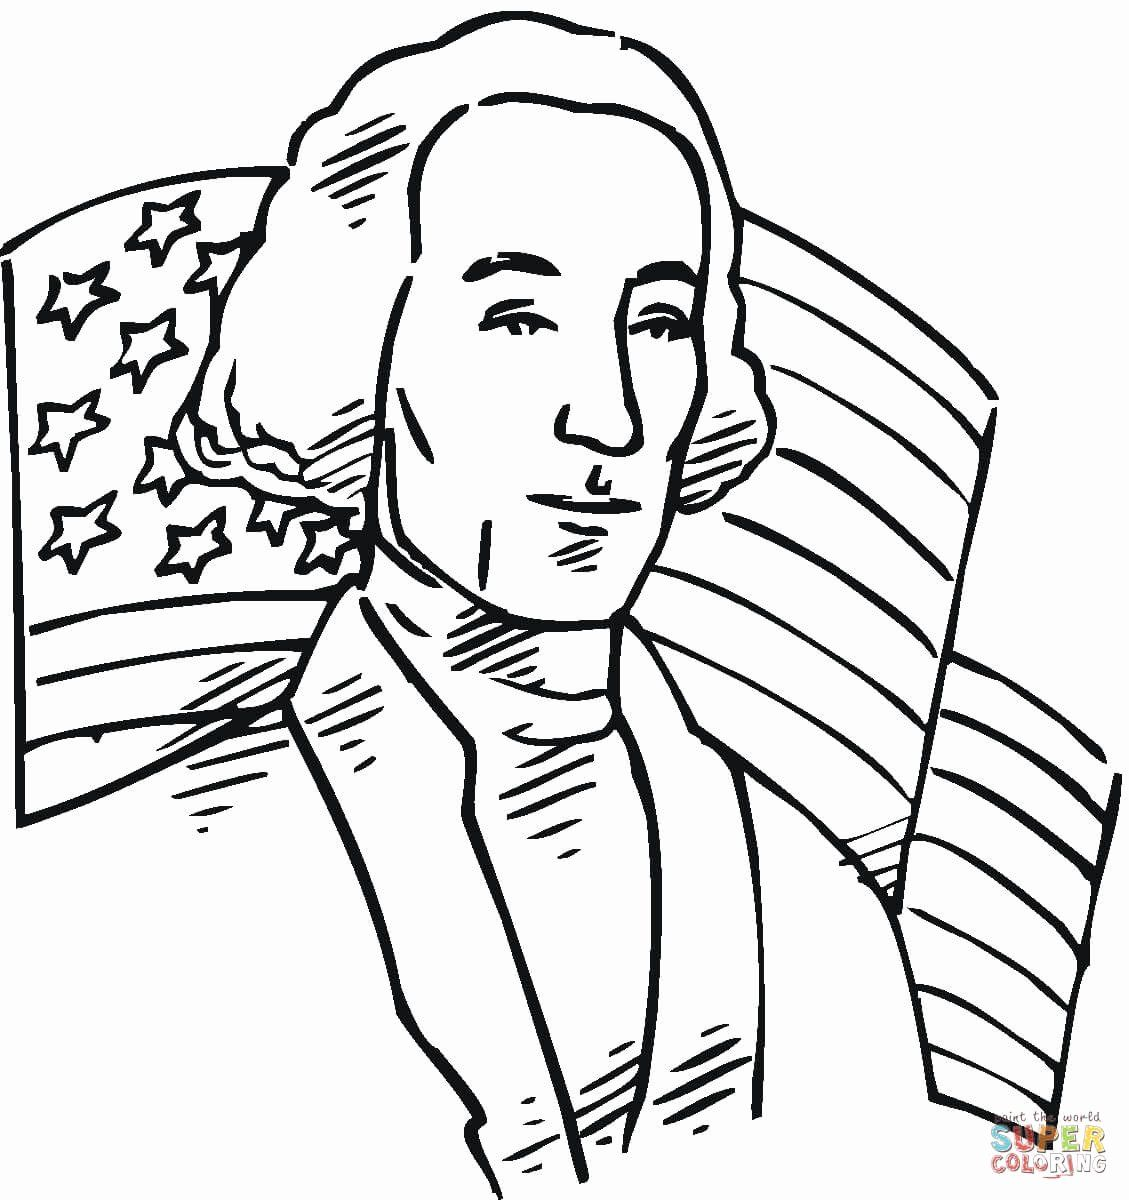 George Washington Coloring Page Luxury George Washington First President Of The Usa Col Coloring Pages Curious George Coloring Pages George Washington Pictures